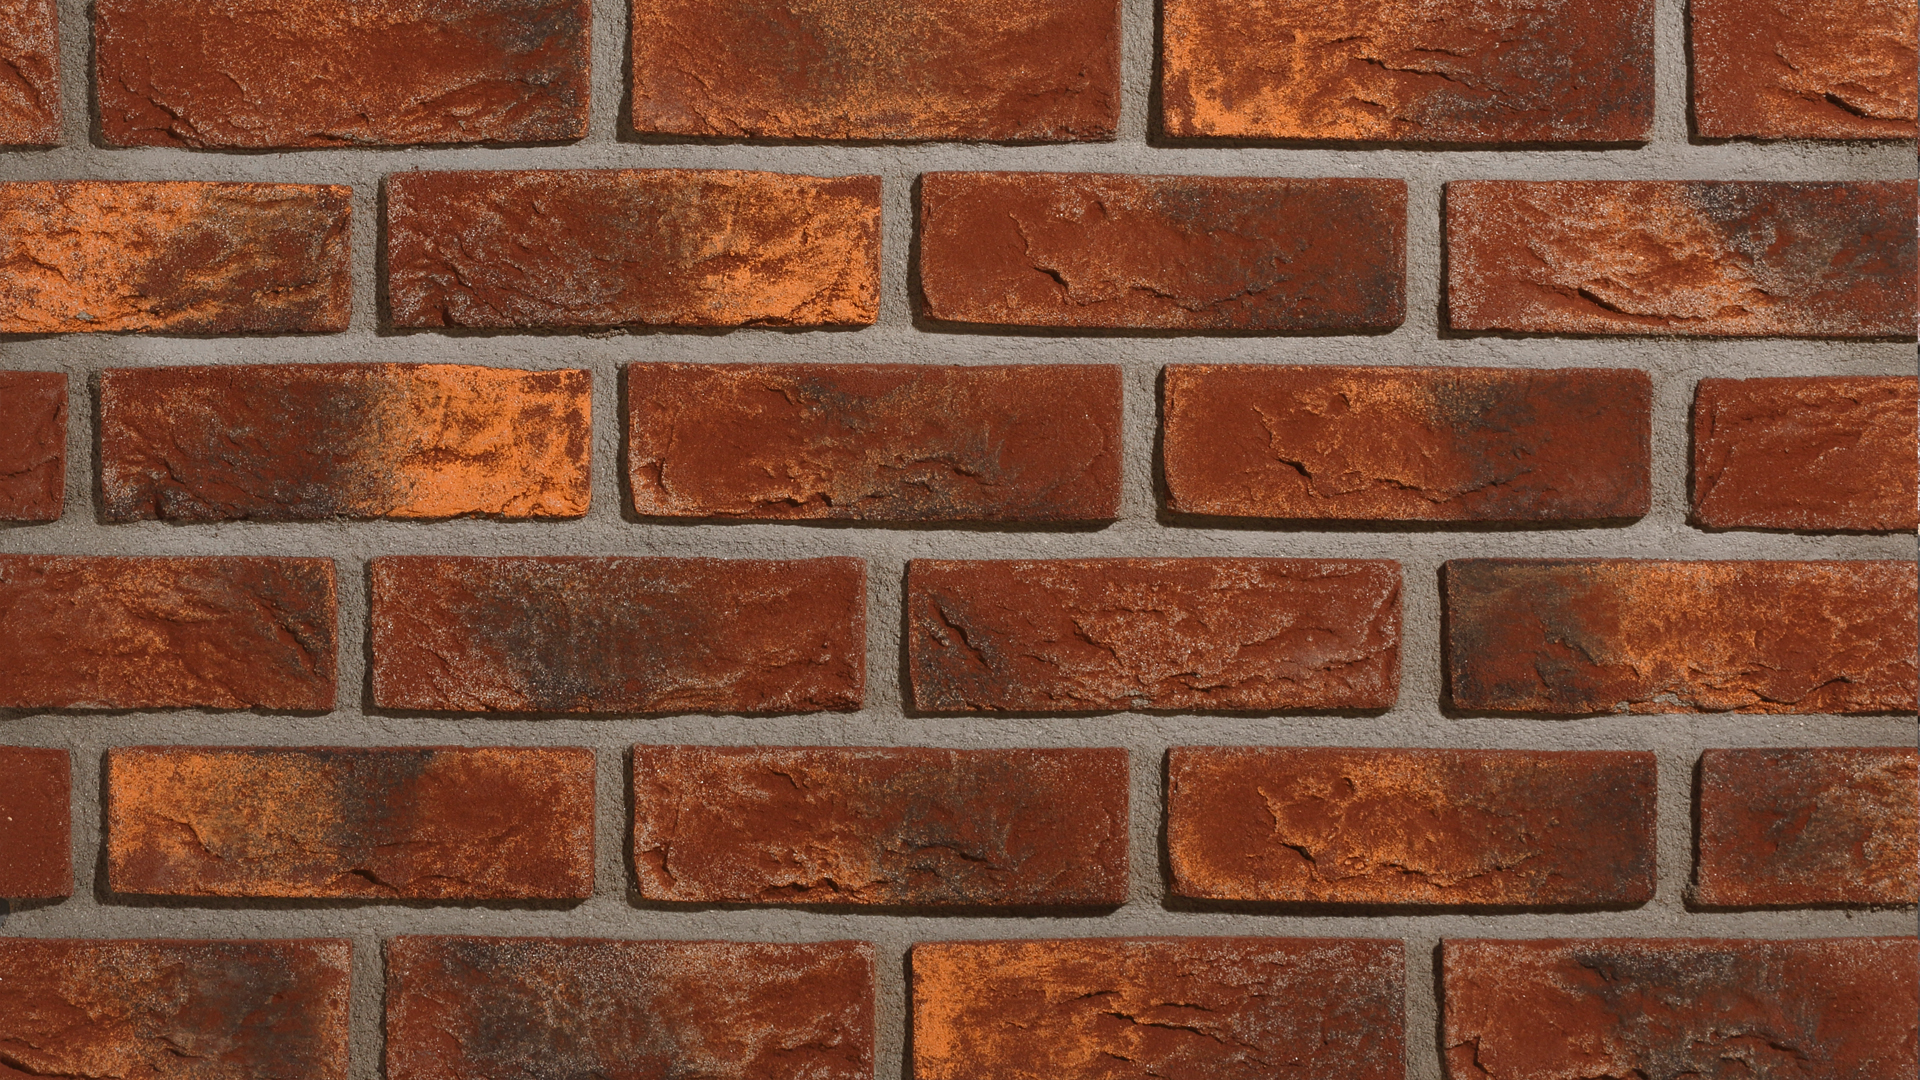 Country Brick 676 Wall Cladding Deco Stones